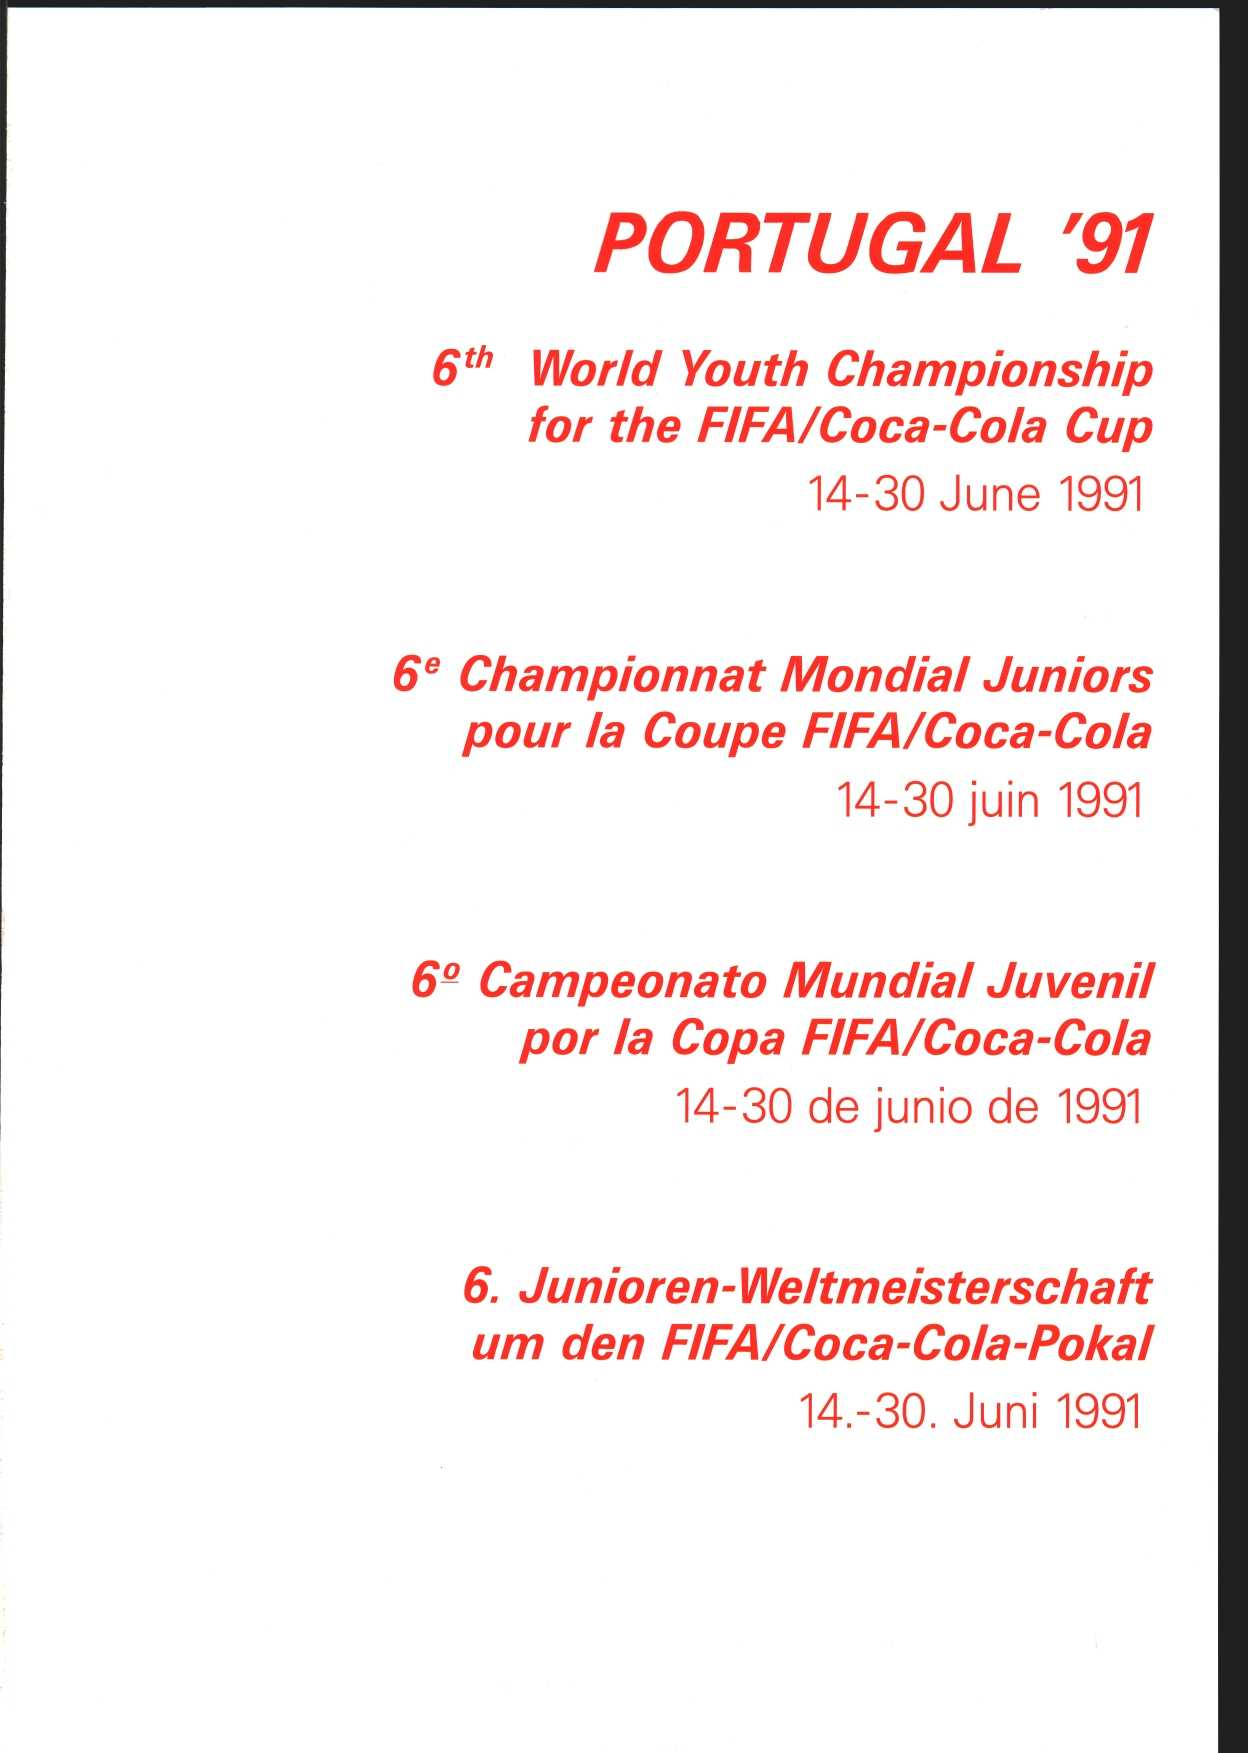 PORTUGAL '97 6' World Youth Championship for the FIFA/Coca-Cola Cup 14-30 June 1991 6e Championnat Mondial Juniors pour la Coupe FIFA/Coca-Cola 14-30 juin